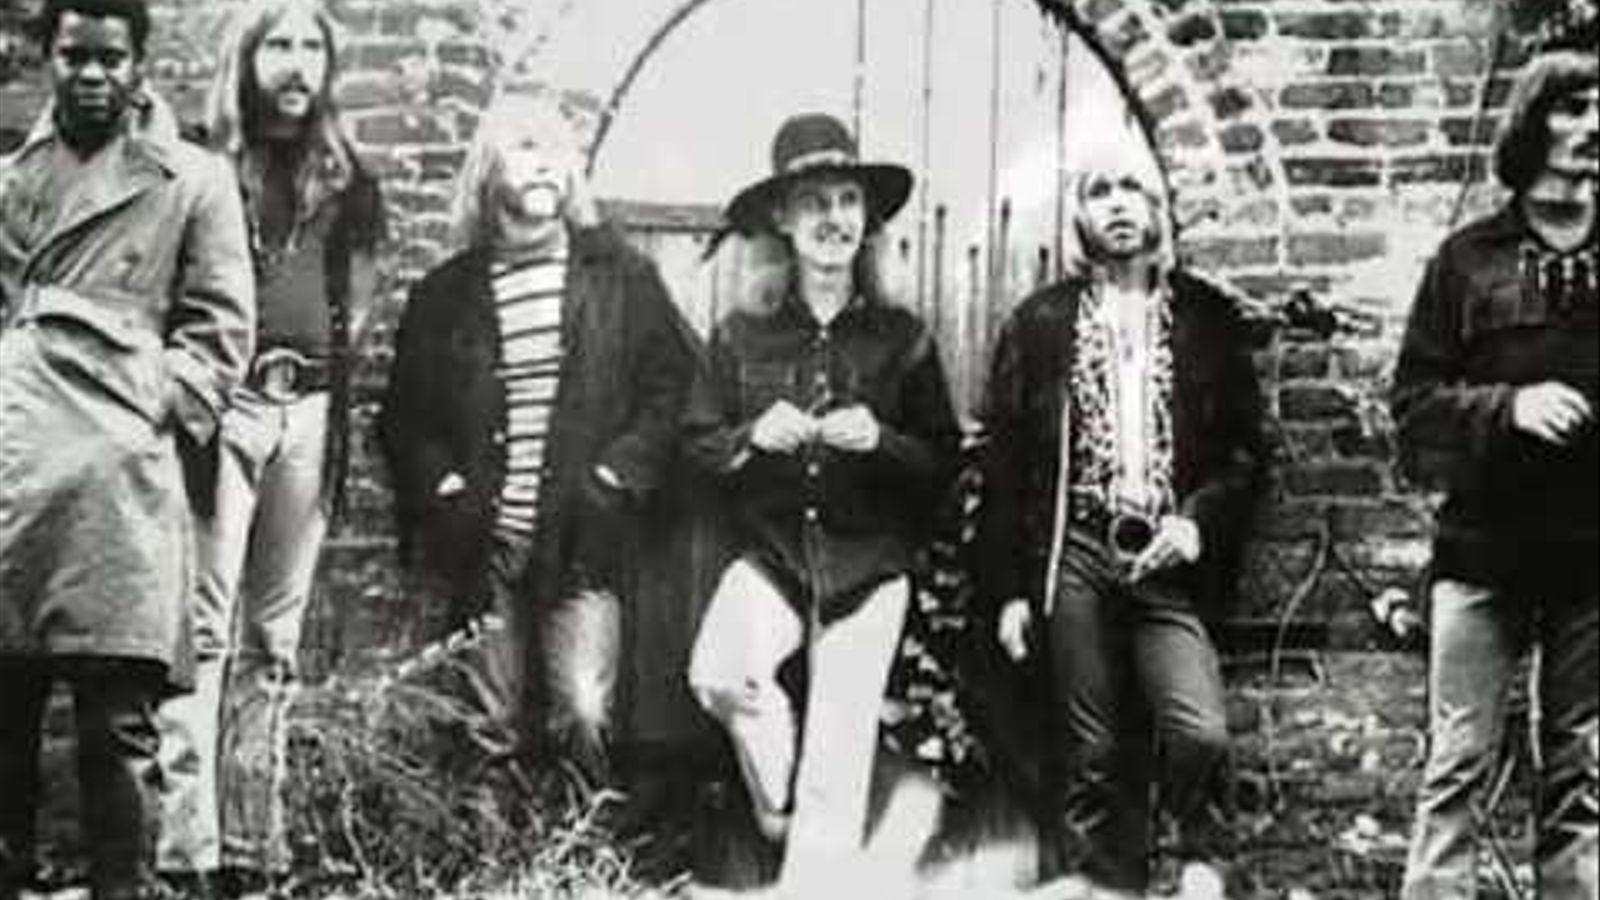 The Allman Brothers Band -  'Ain't waistin' time no more'